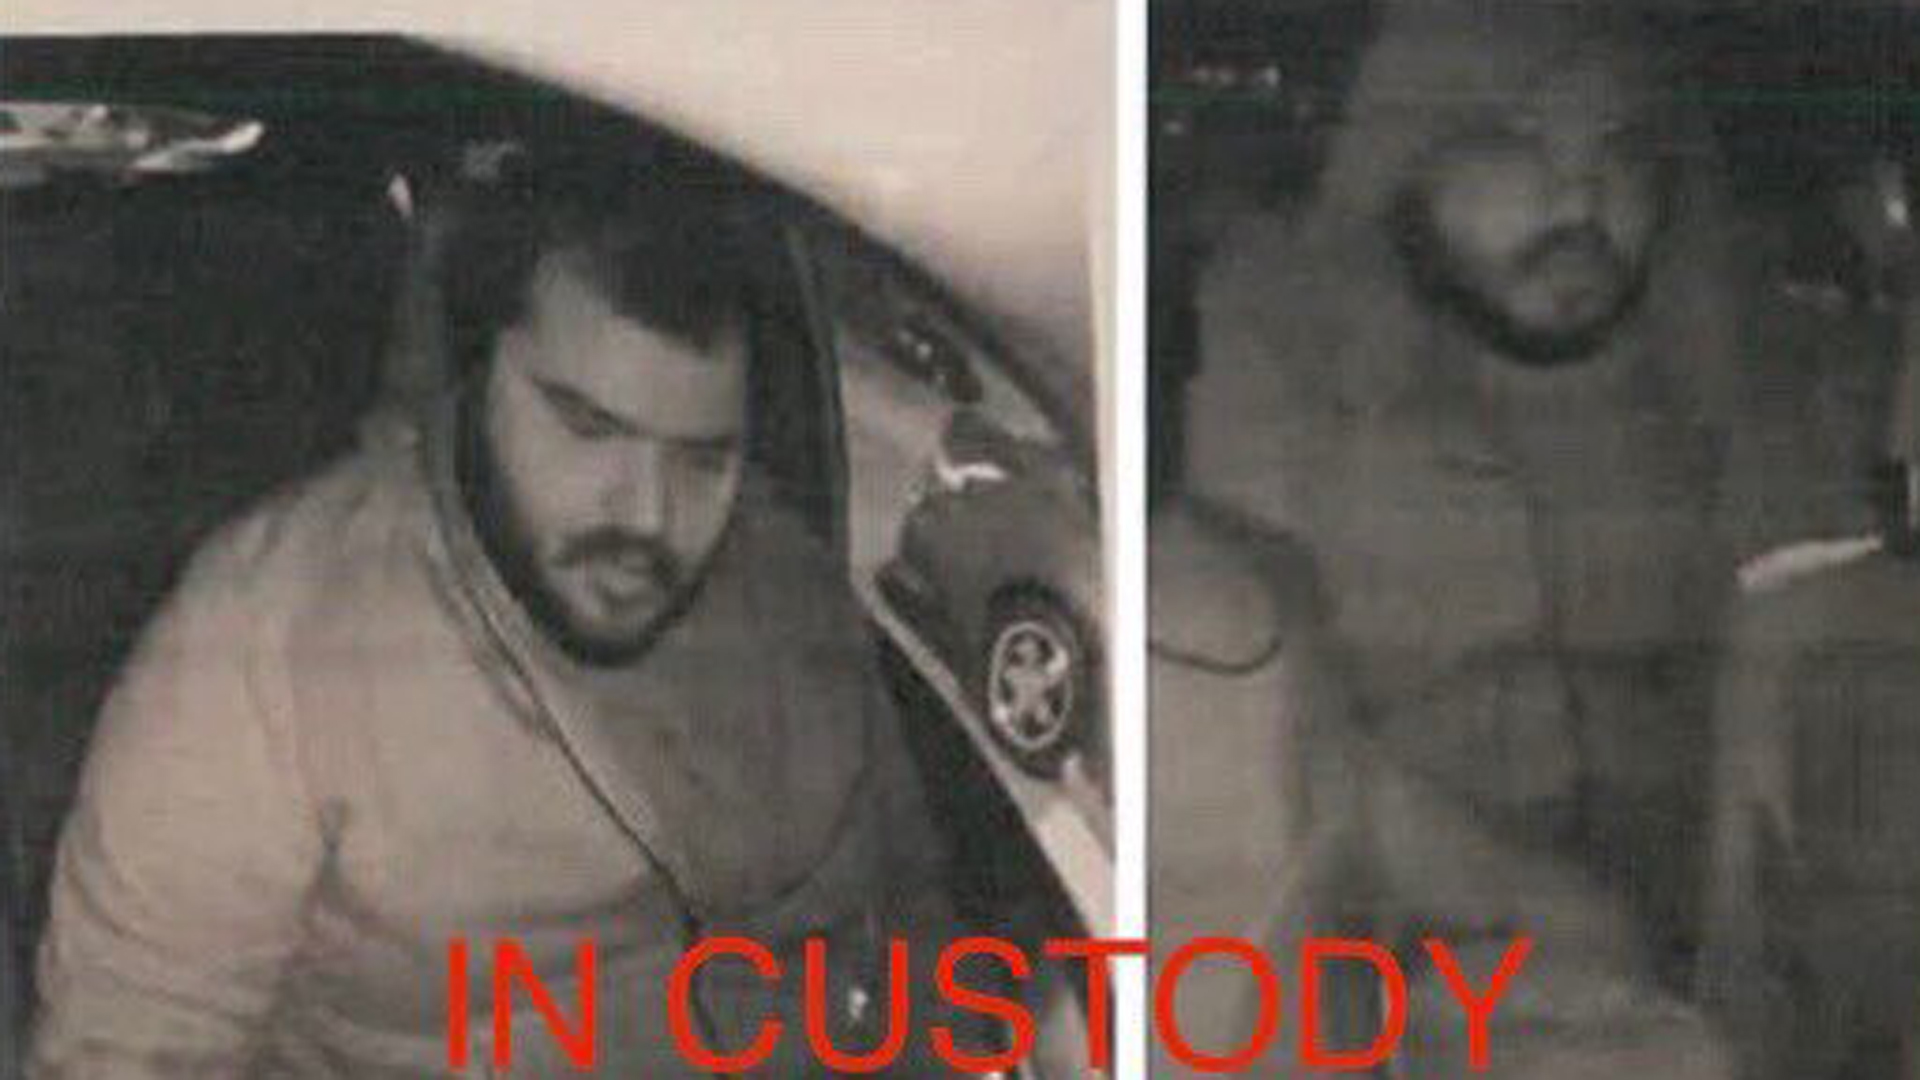 Police on Nov. 17, 2019, announced the arrest of a suspect in connection with the fatal stabbing of a taxi driver in downtown Los Angeles on Nov. 15, 2019. (Credit: Los Angeles Police Department)